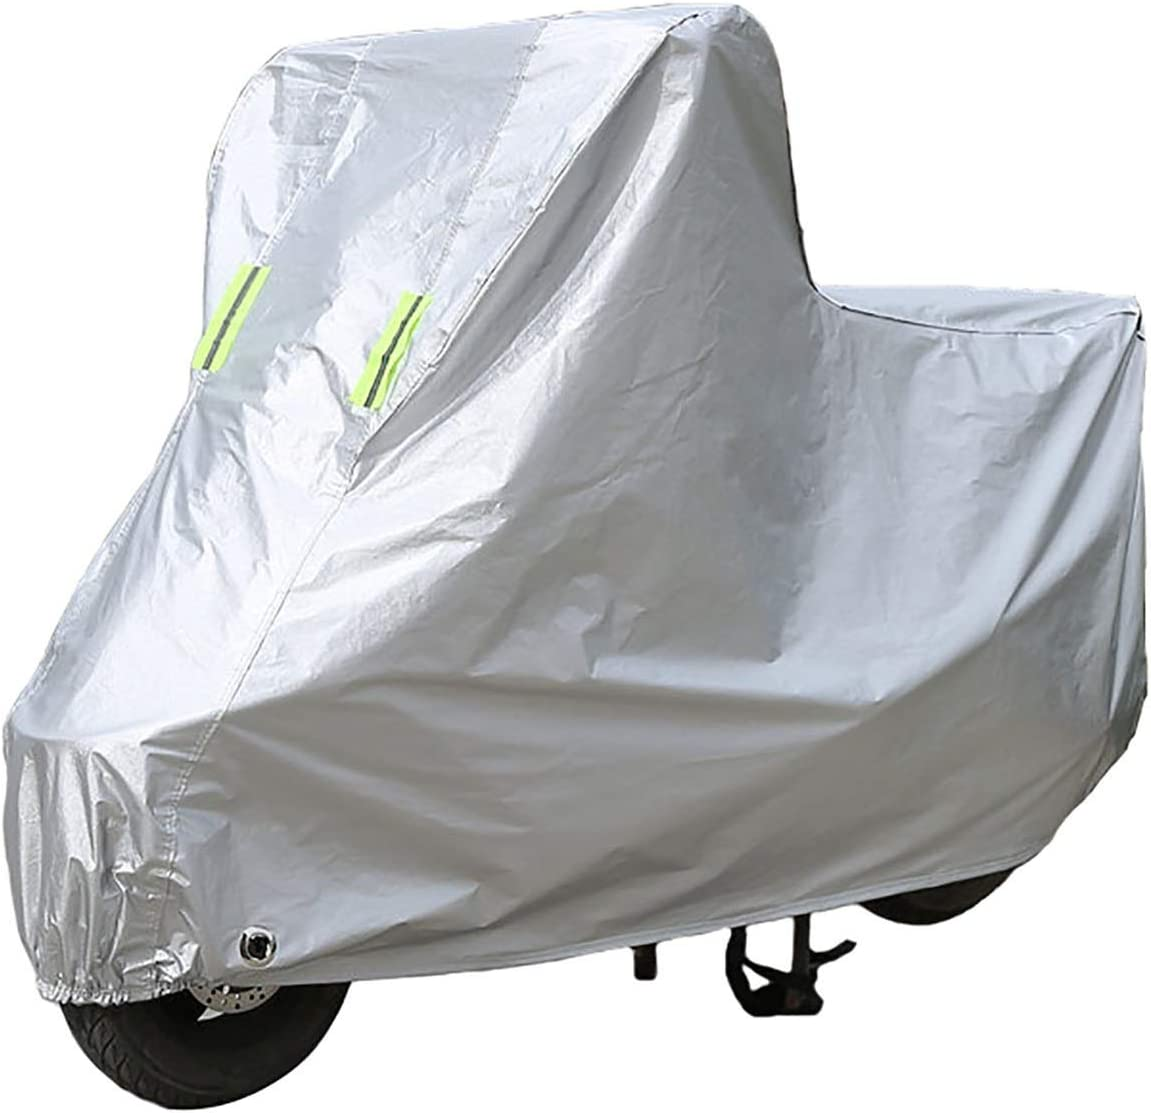 Safety and trust Car Accessories Motorcycle Covers Branded goods Compatible with Cov